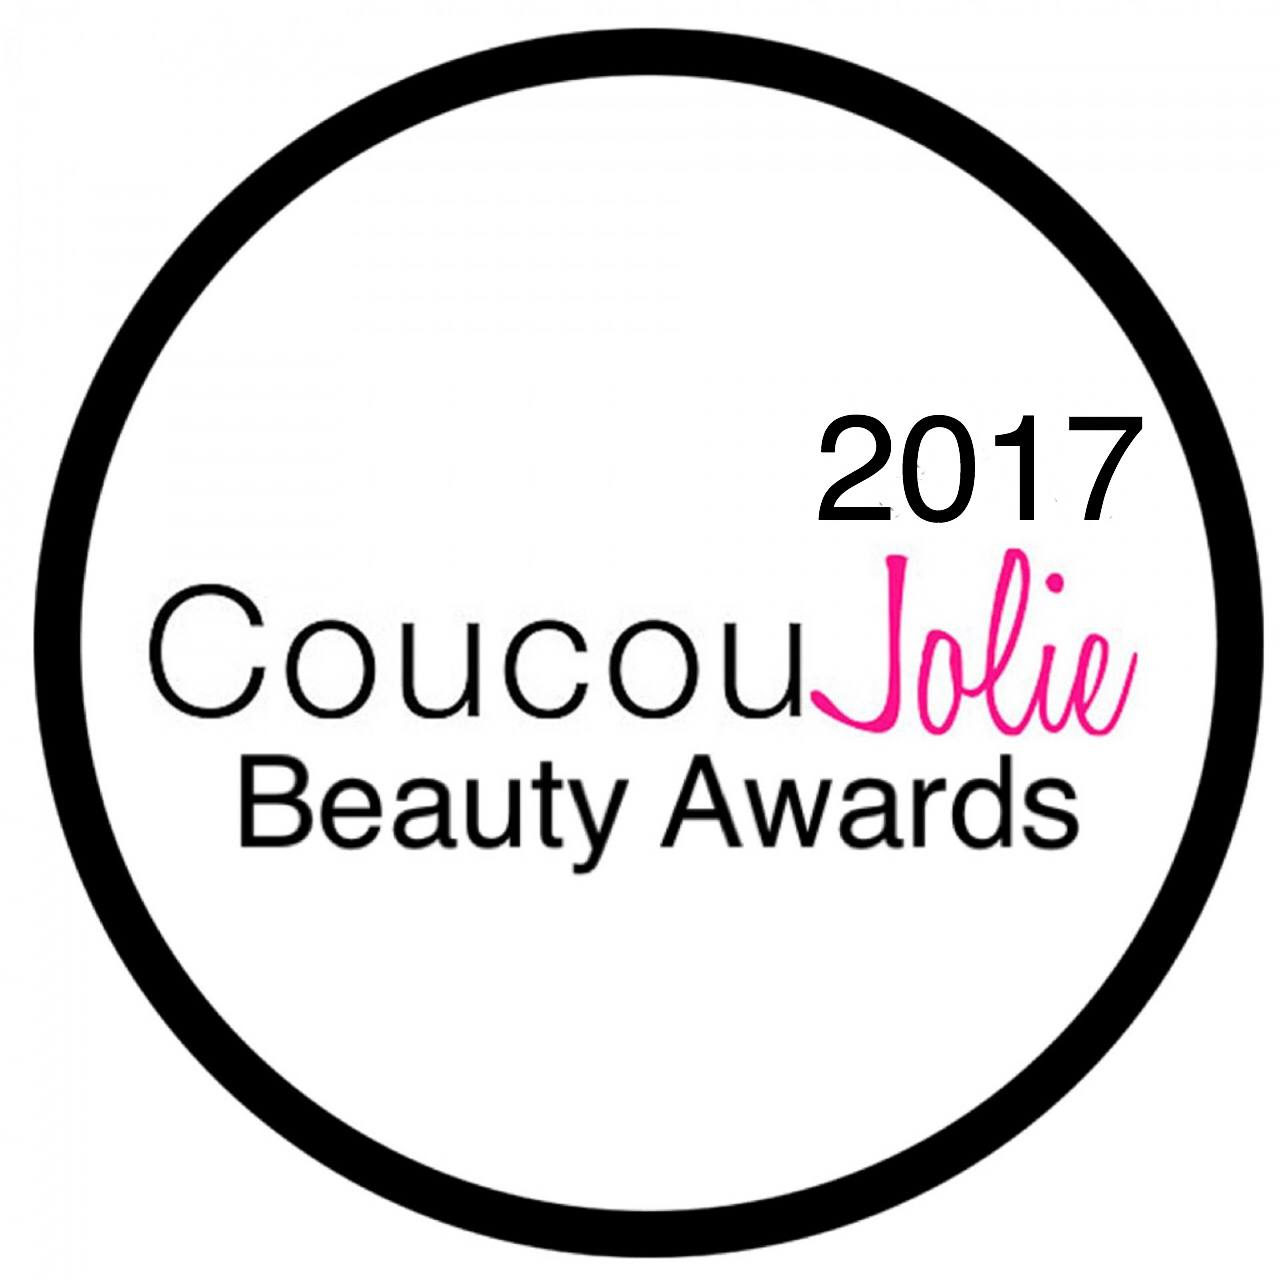 Coucou Jolie Beauty Awards 2017